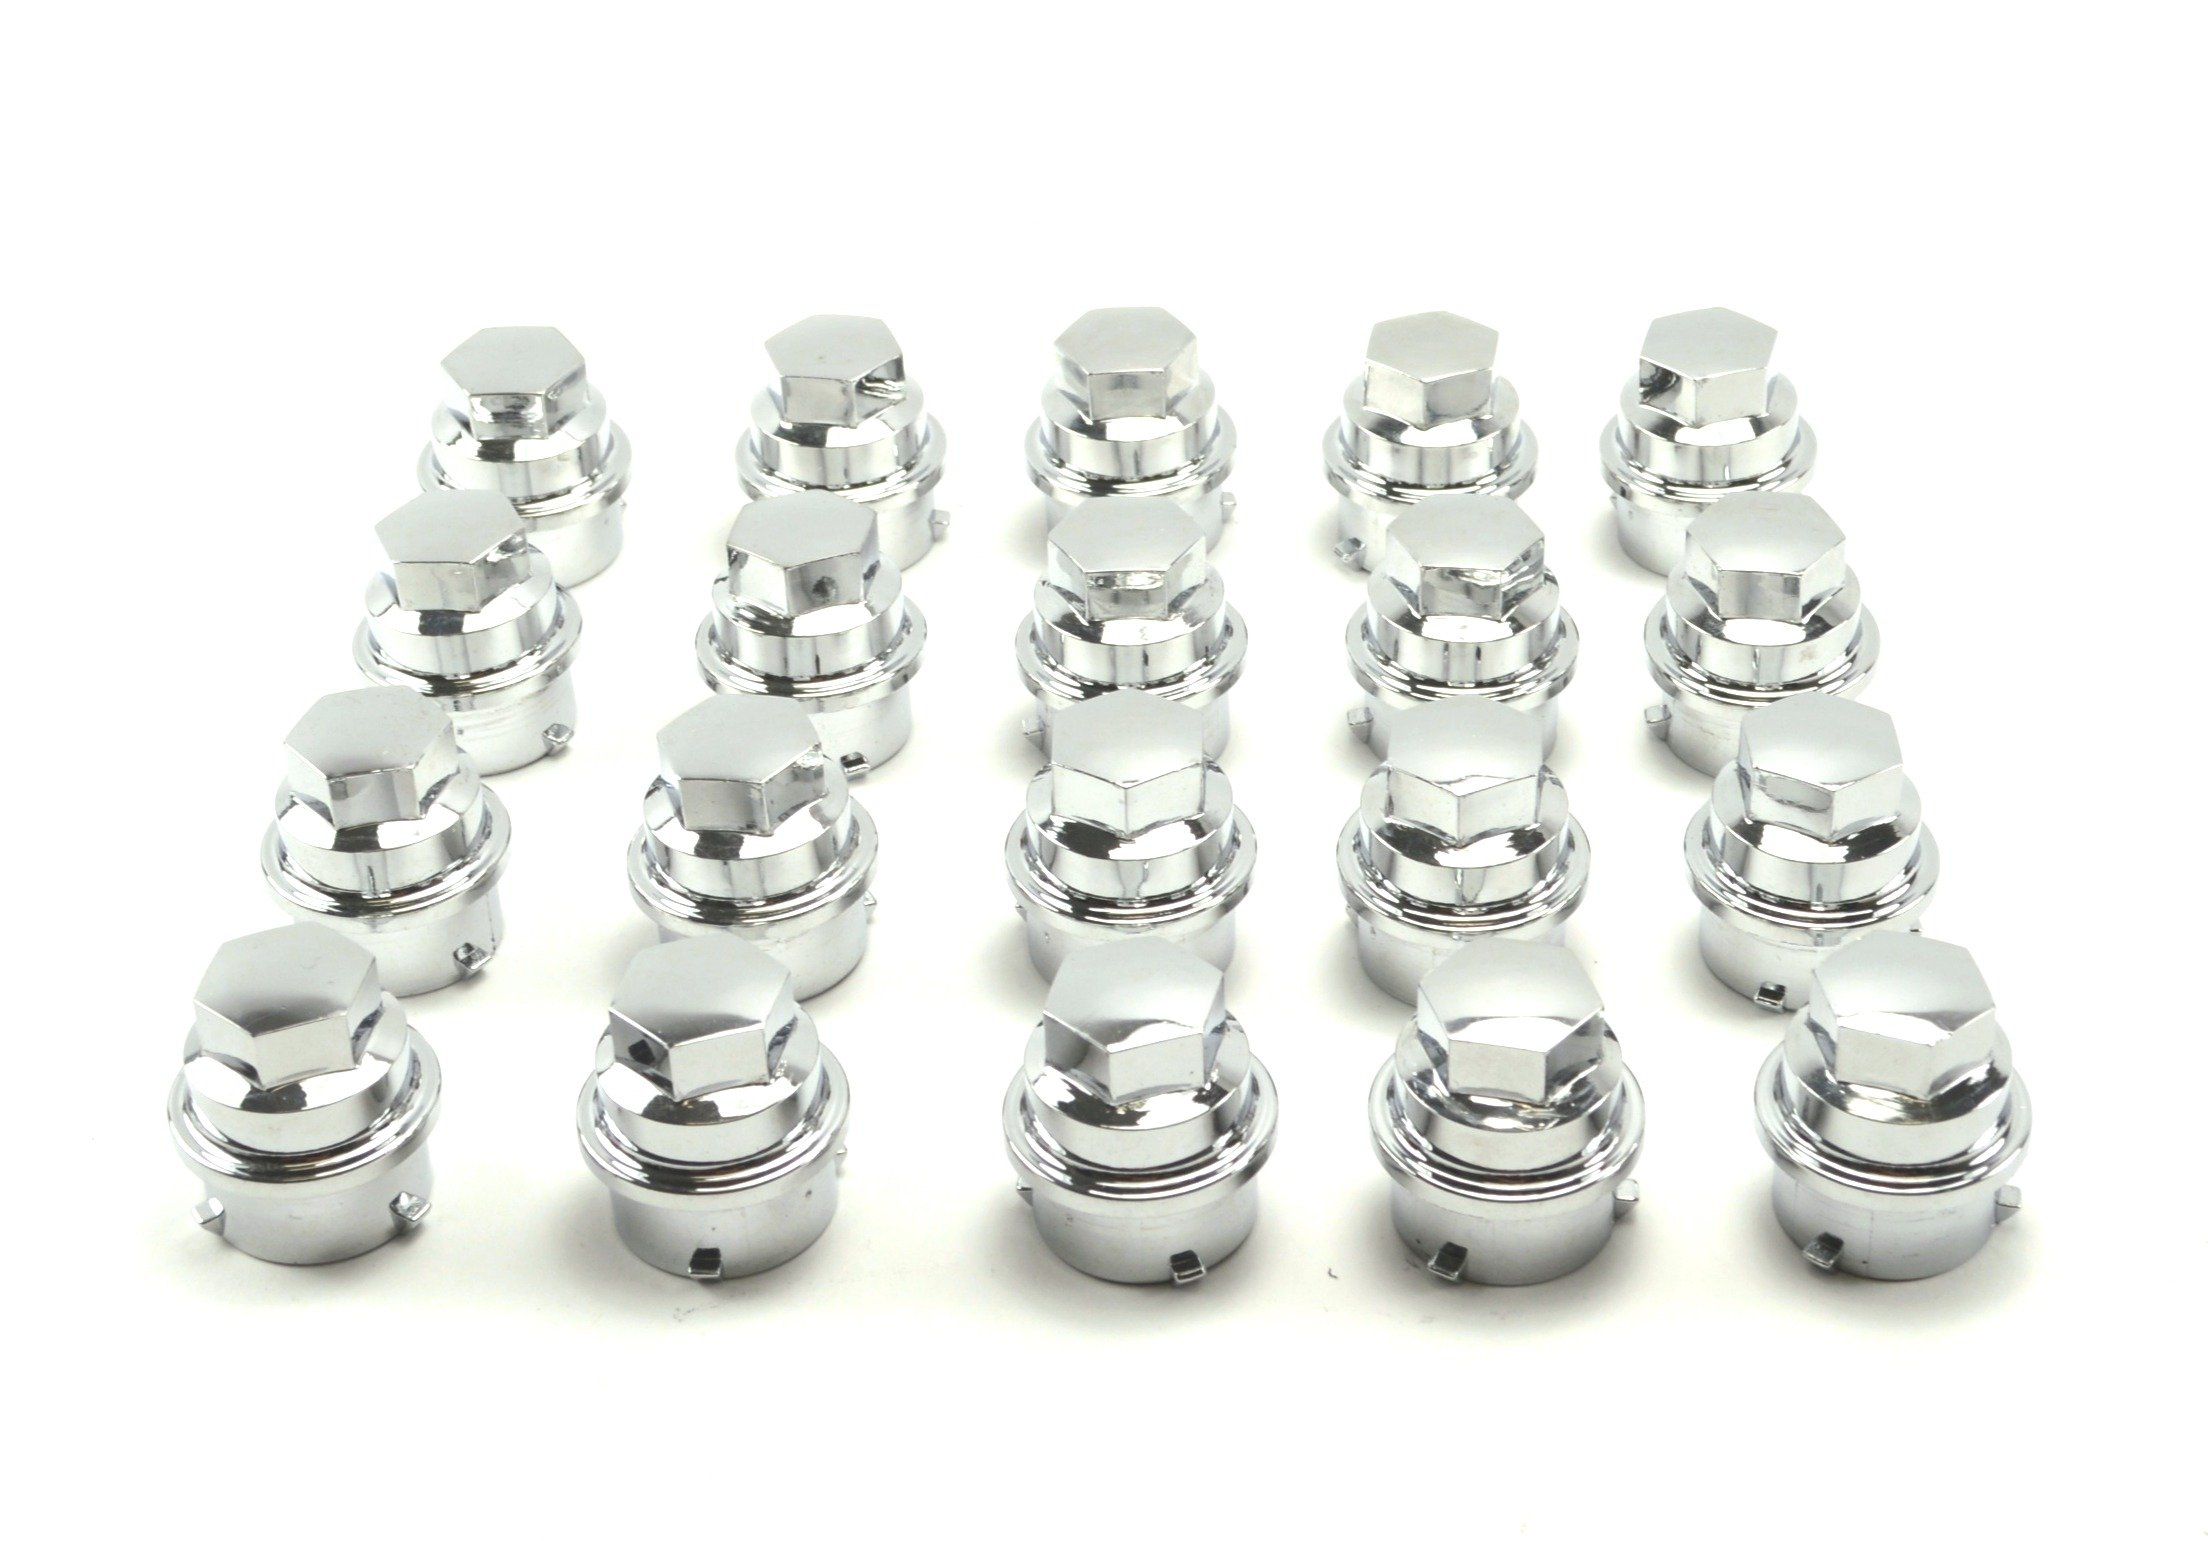 BB Auto Set of 20 New Chrome Screw On Lug Nut Covers Caps Hex head for Chevrolet Camaro Corvette Monte Carlo Impala